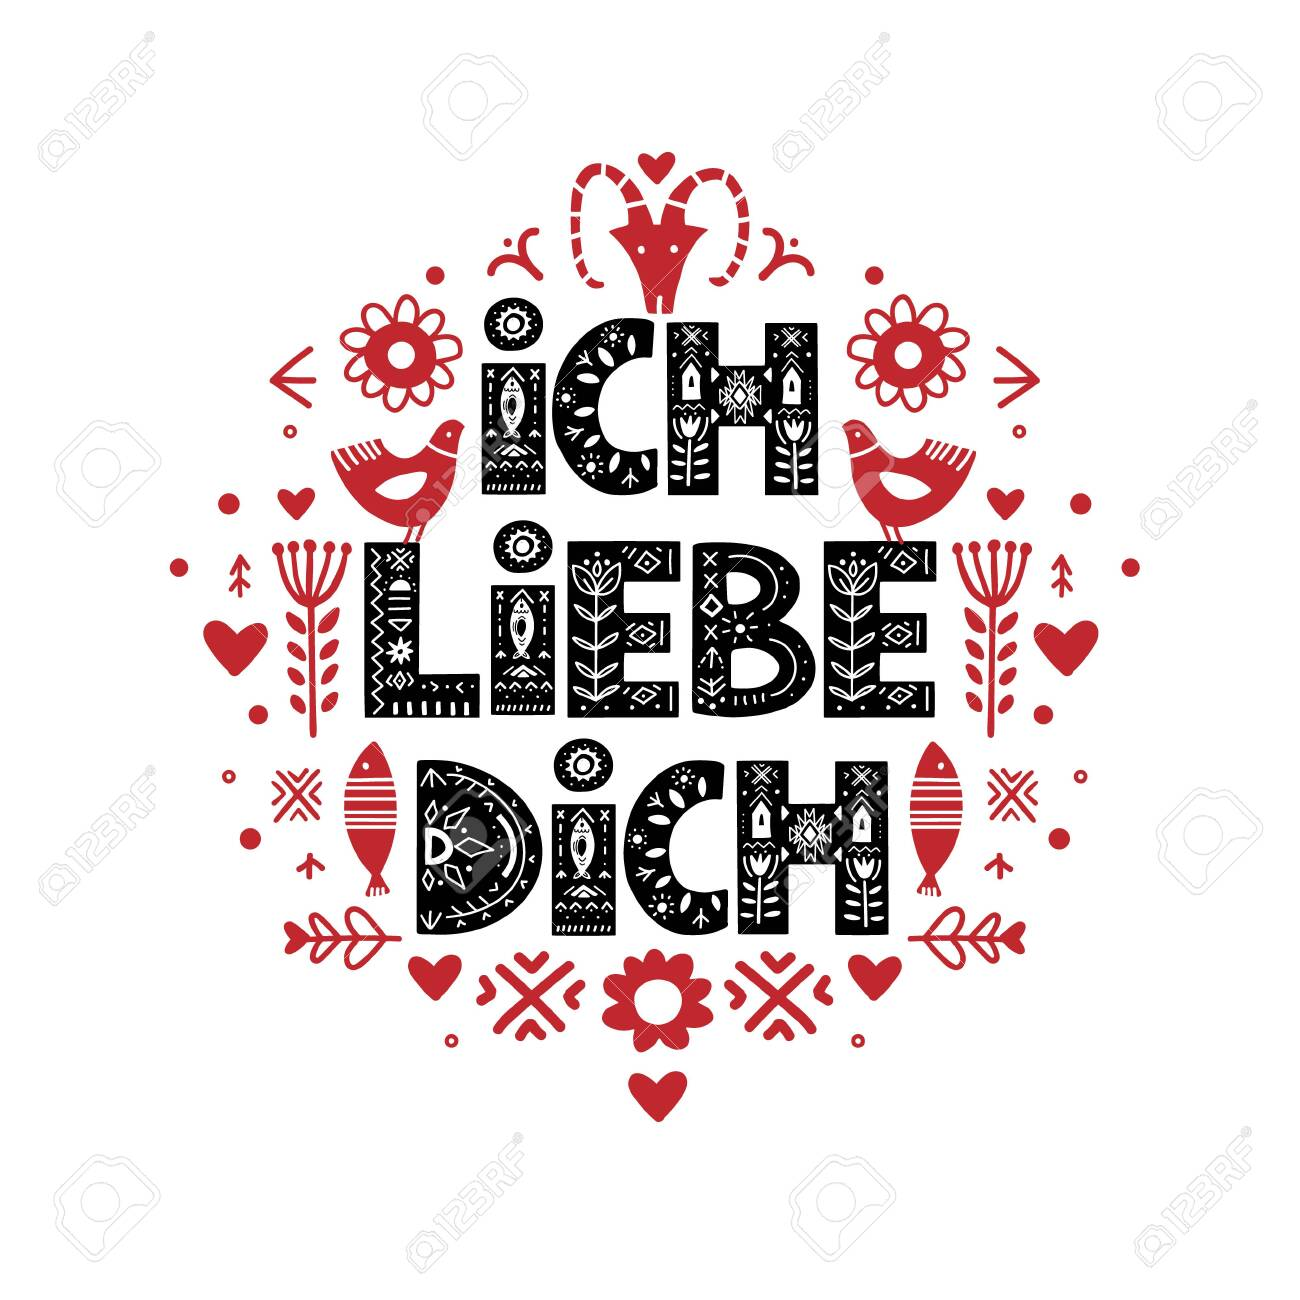 Ich Liebe Dich Calligraphy Template In German Lettering Poster Royalty Free Cliparts Vectors And Stock Illustration Image 137165851